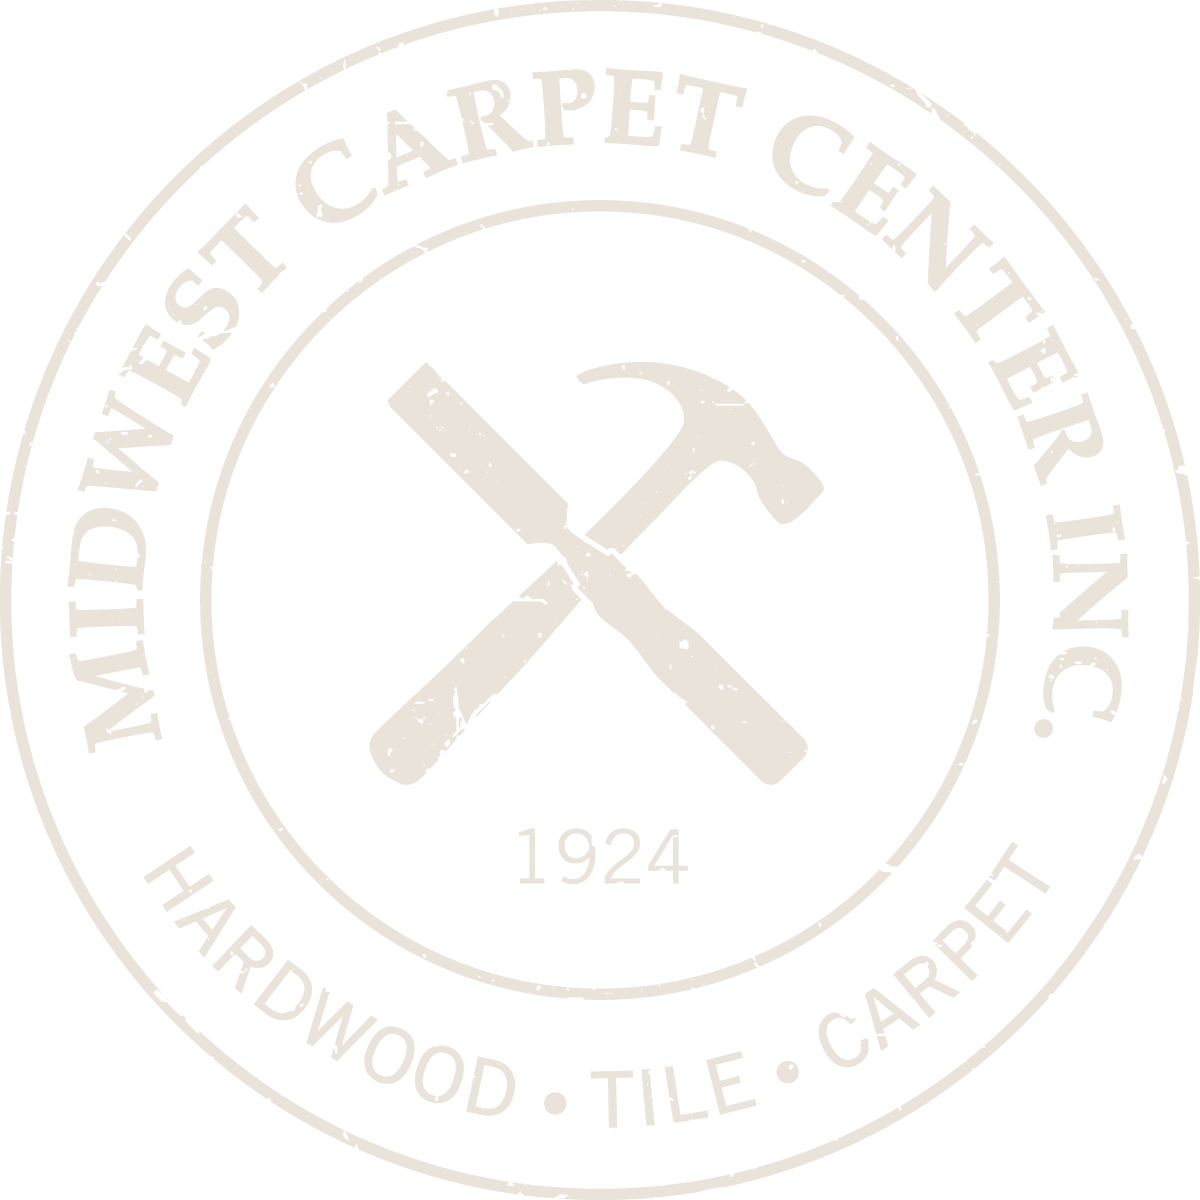 Midwest Carpet Center